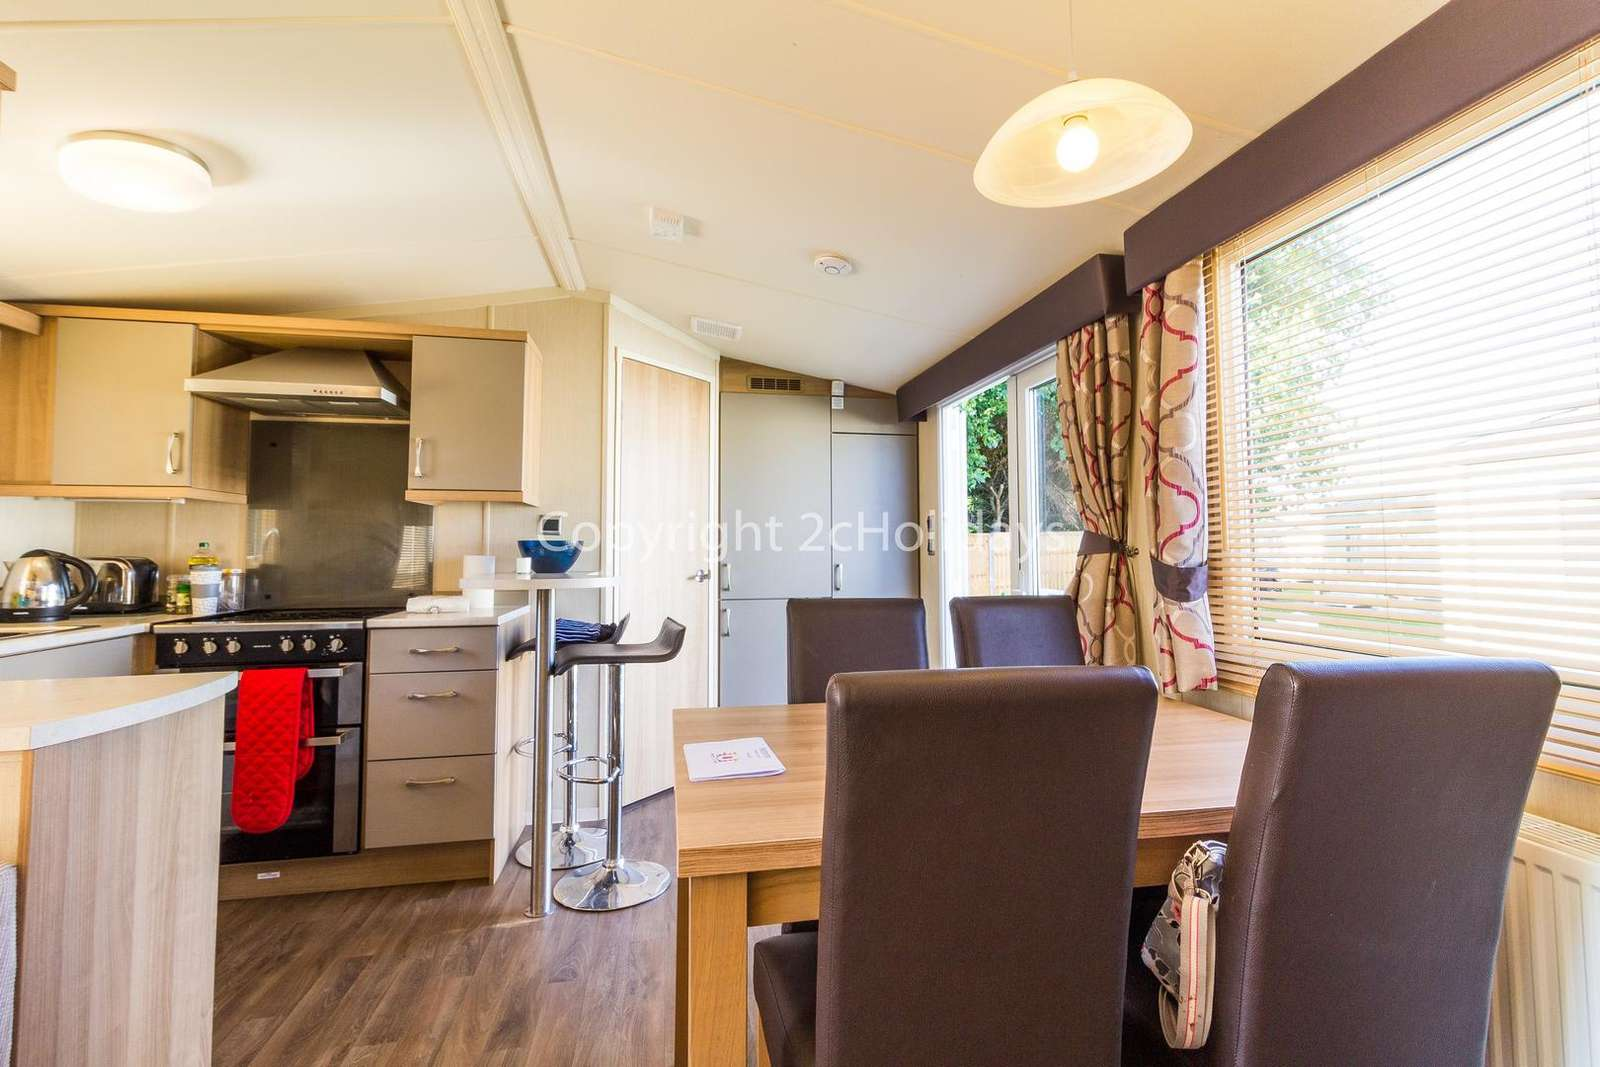 Come and stay in this private accommodation at Hopton Holiday Village.